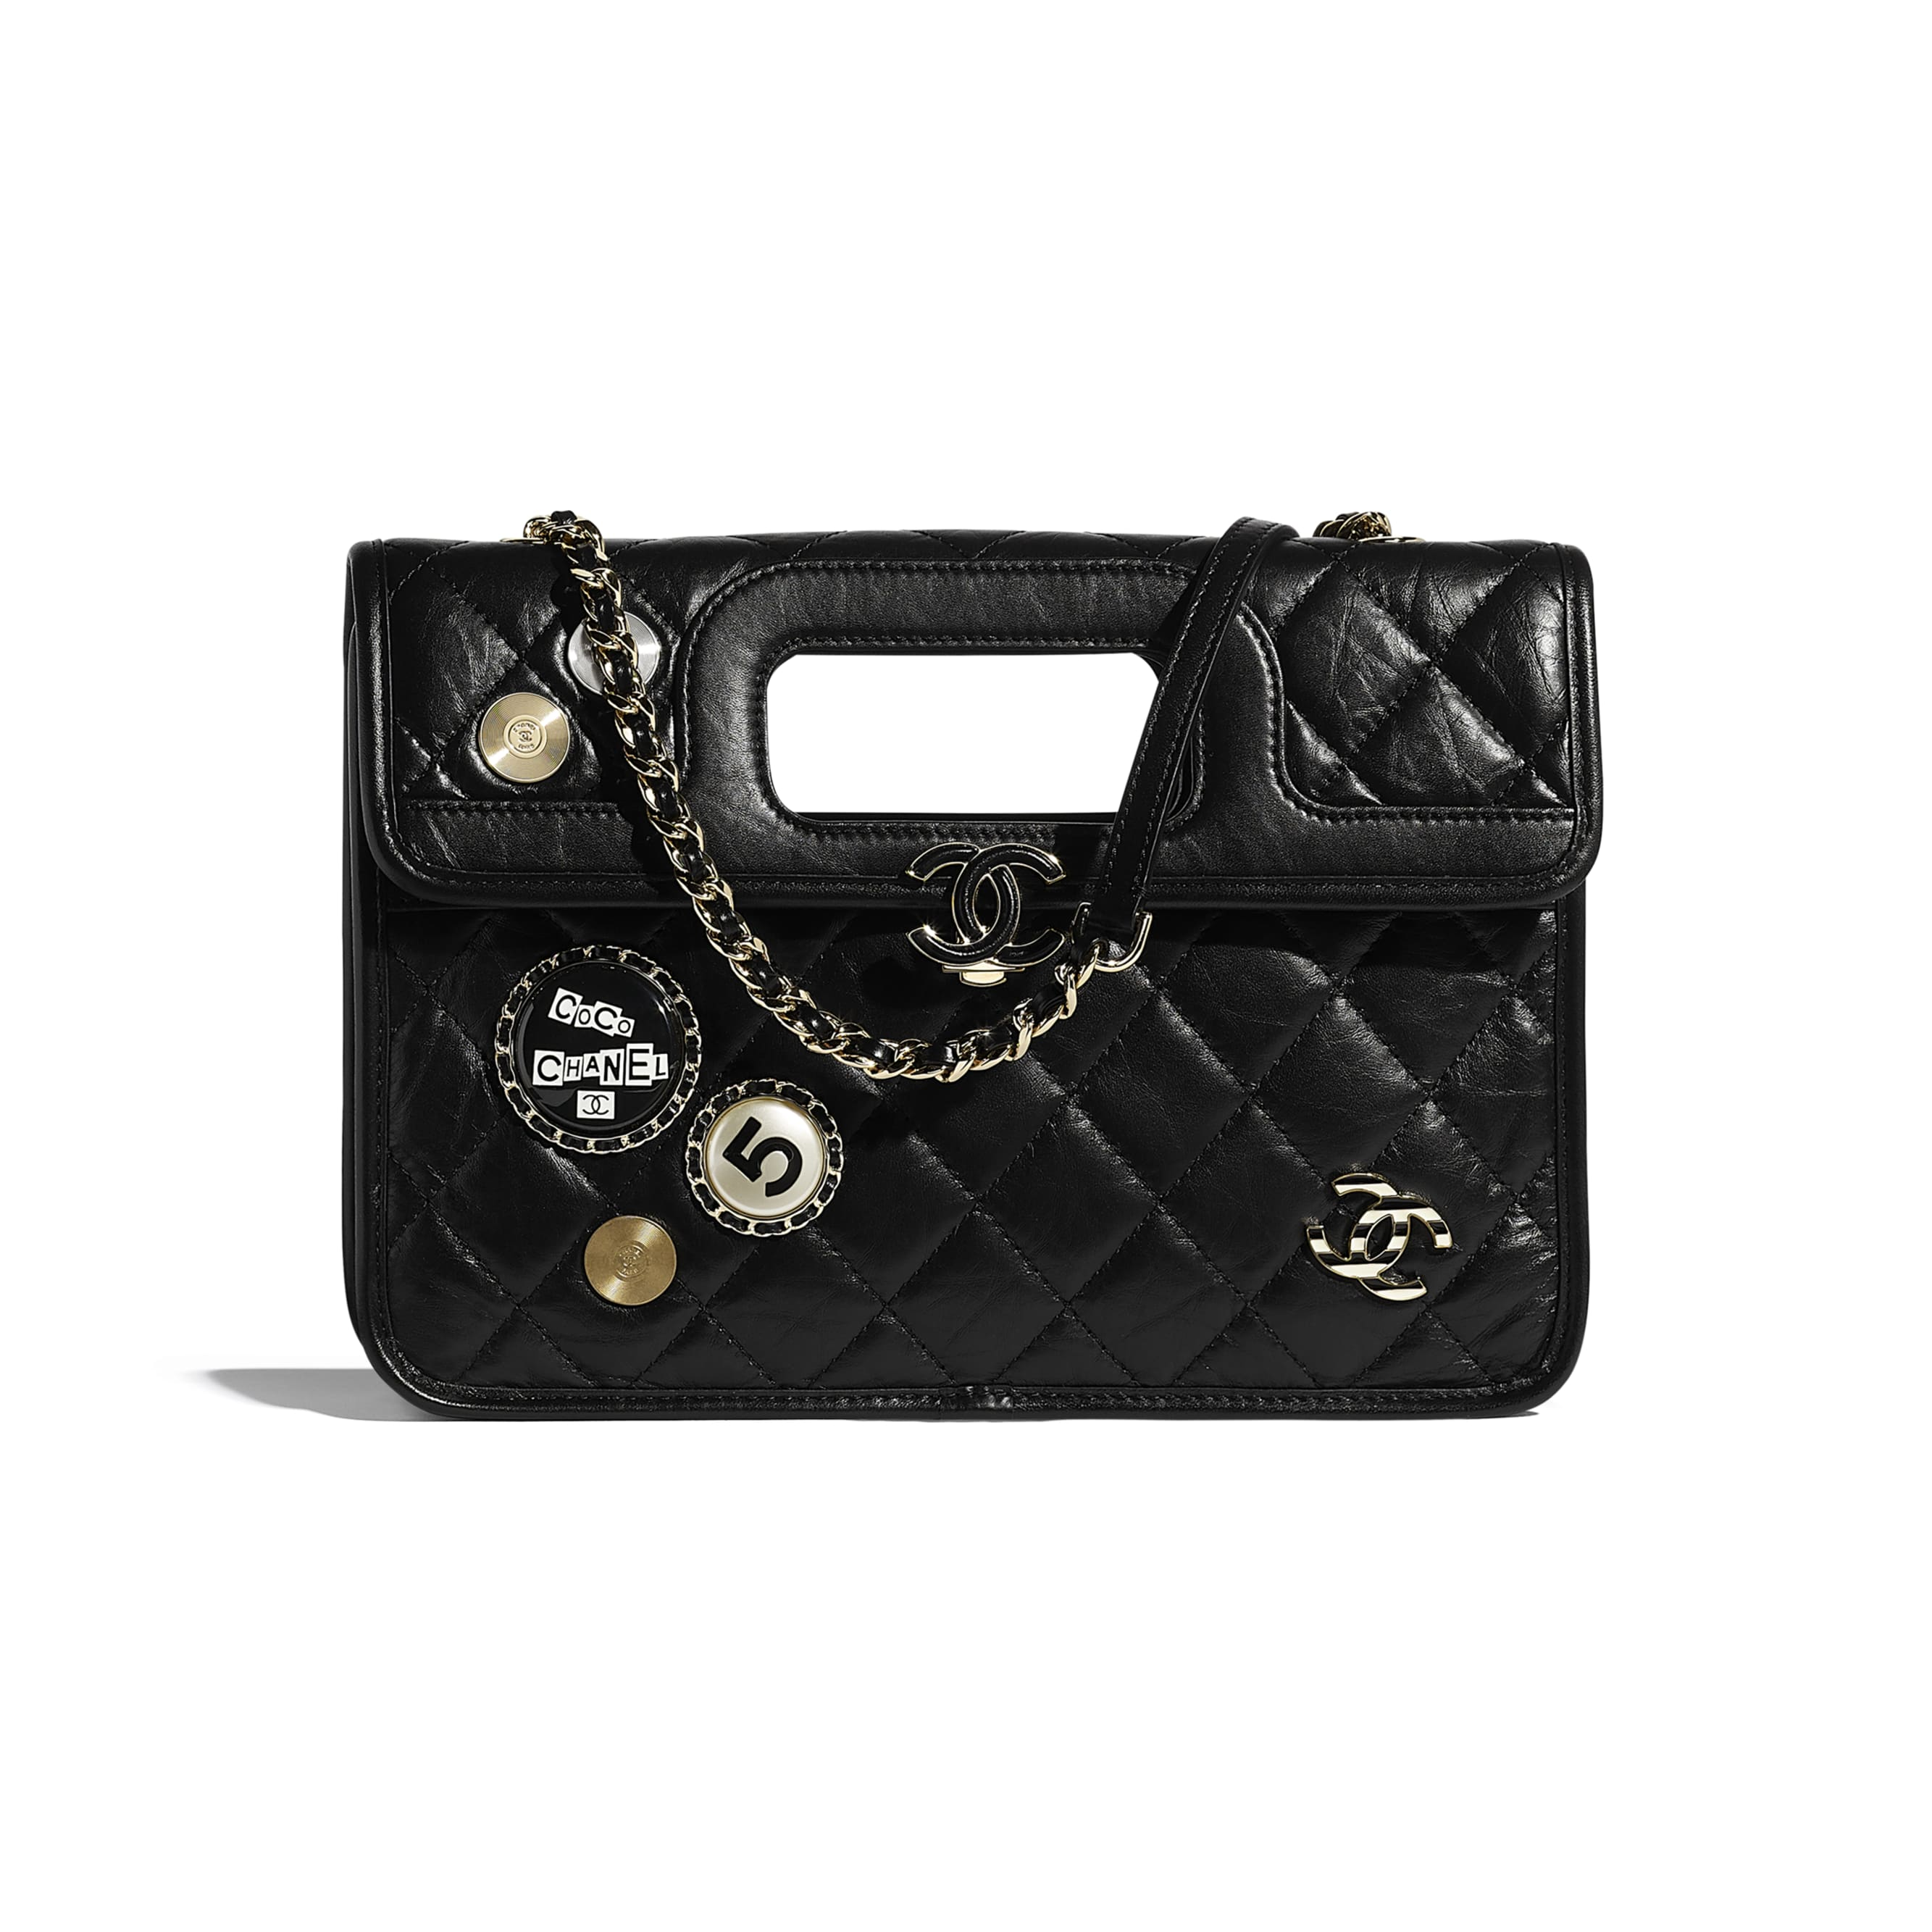 Flap Bag - Black - Aged Calfskin, Charms & Gold-Tone Metal - CHANEL - Default view - see standard sized version